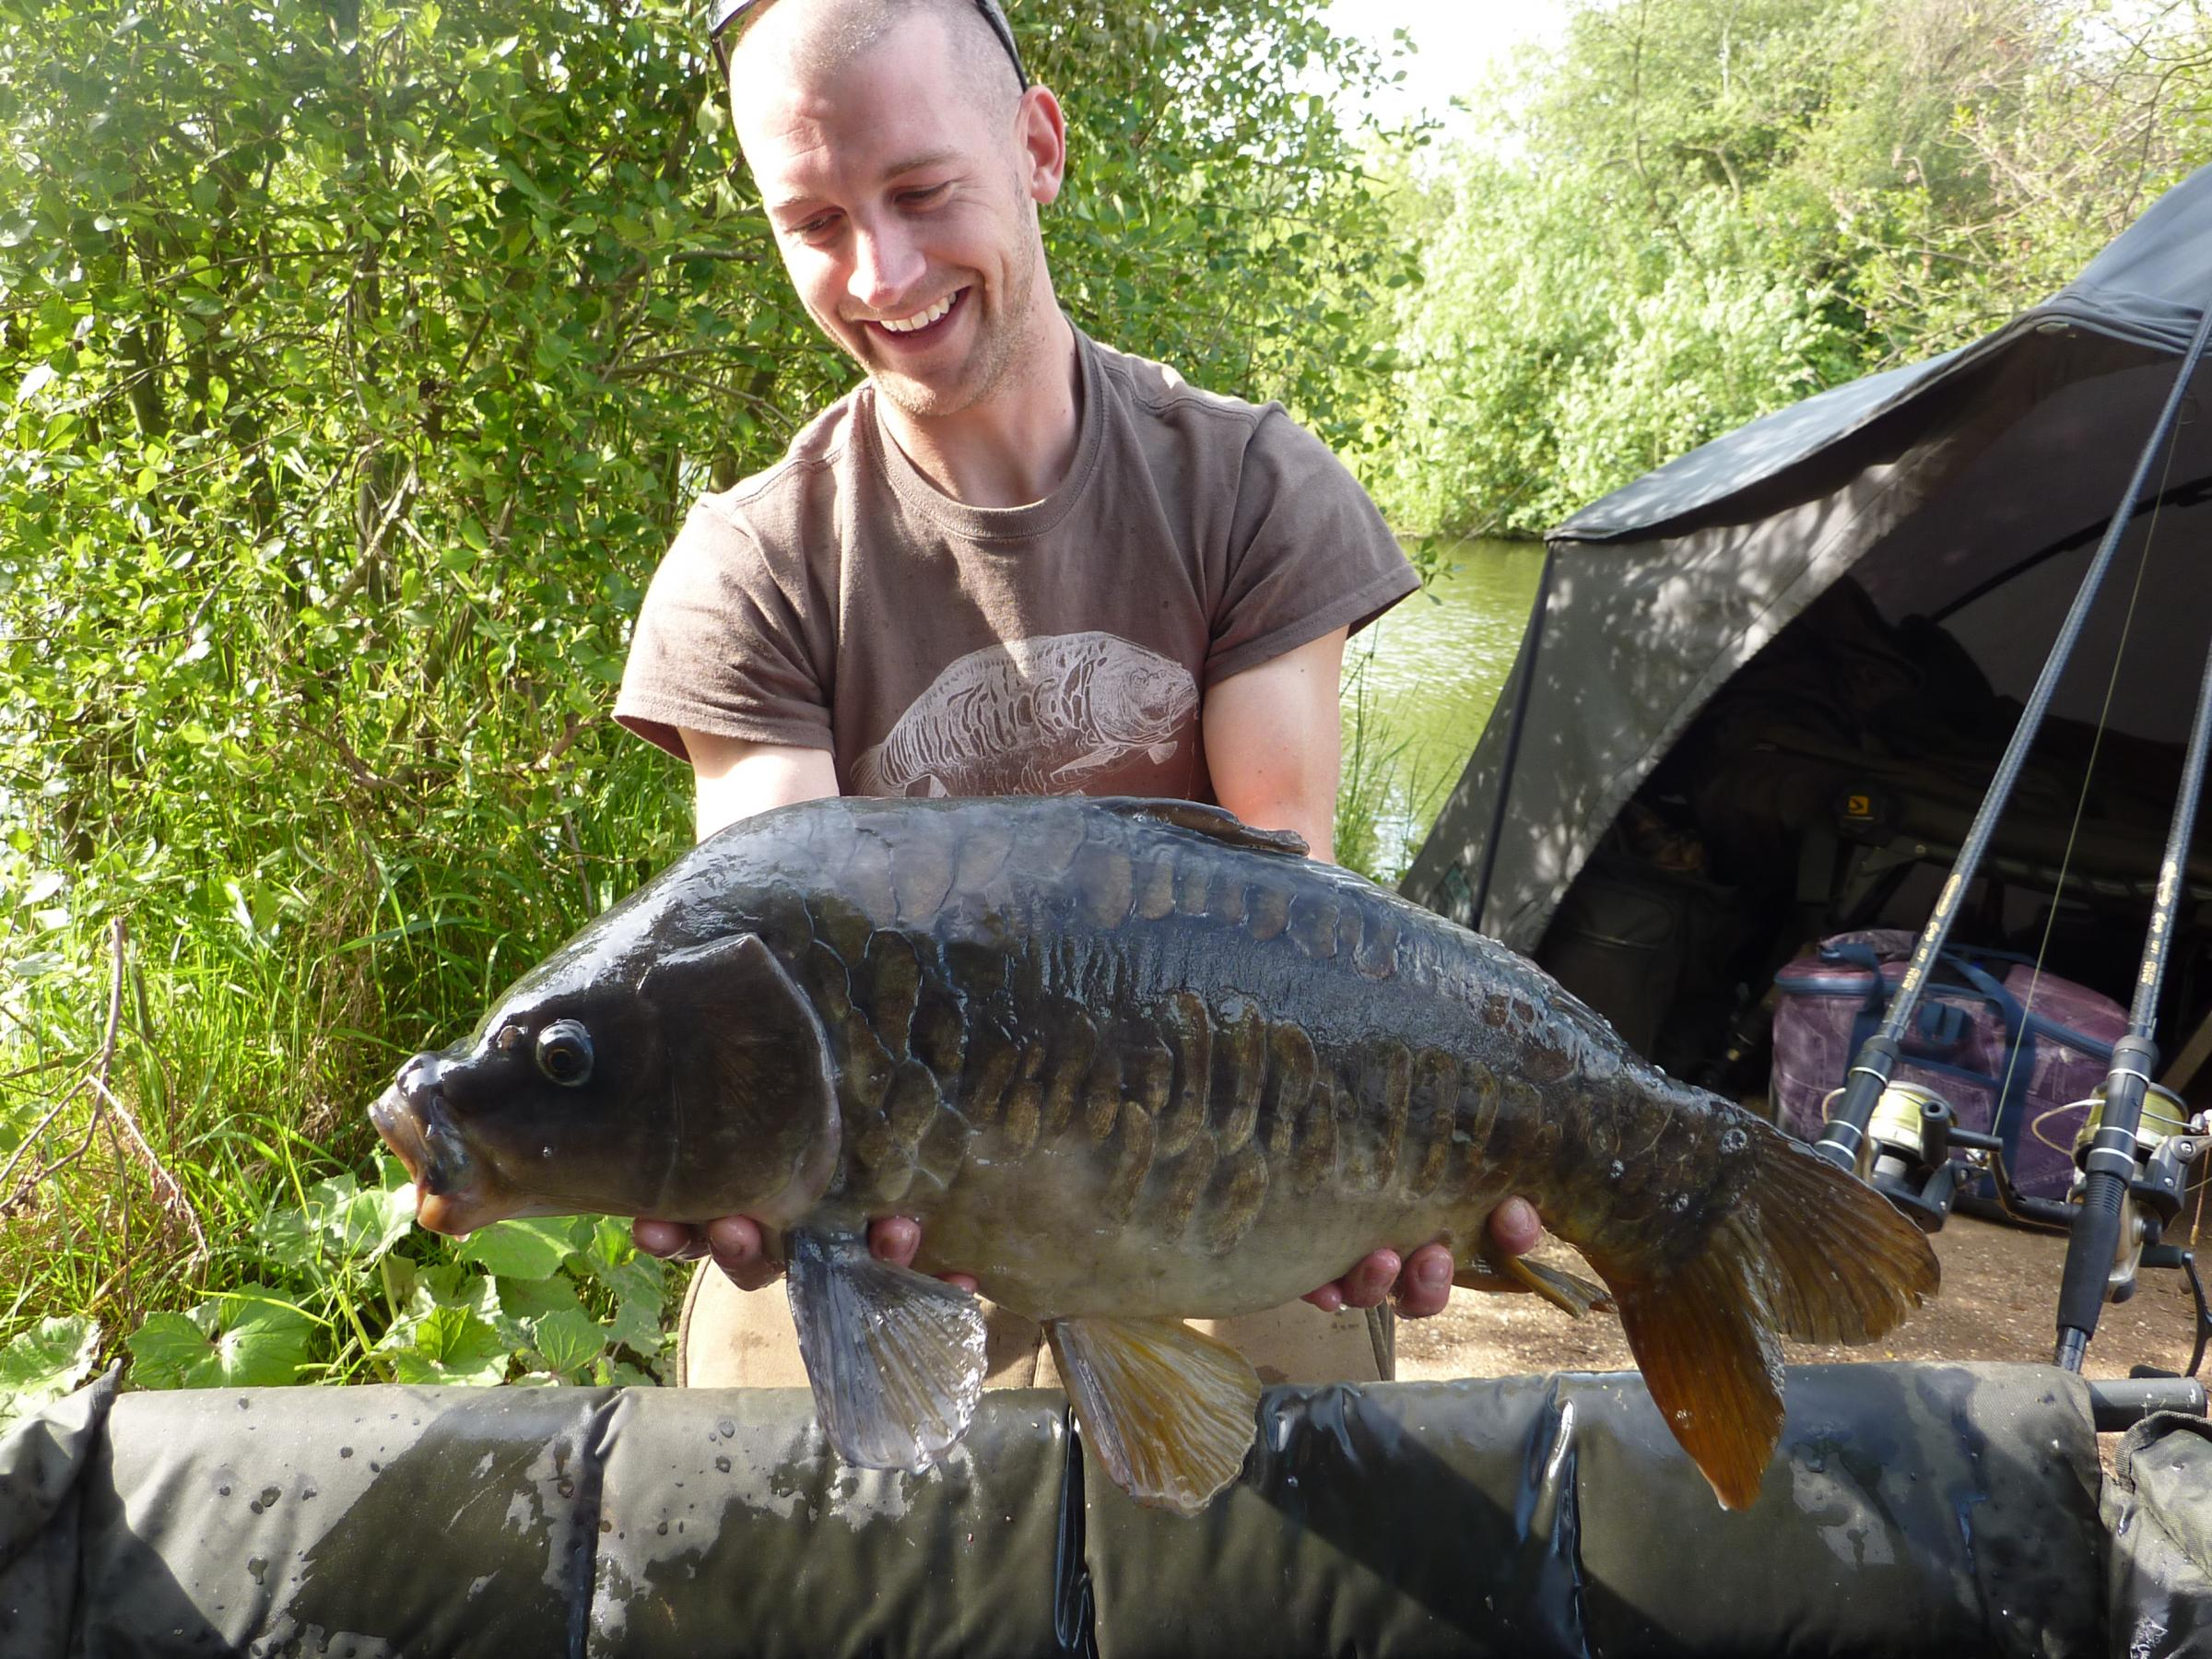 All smiles — Ed McIntosh and one of his carp